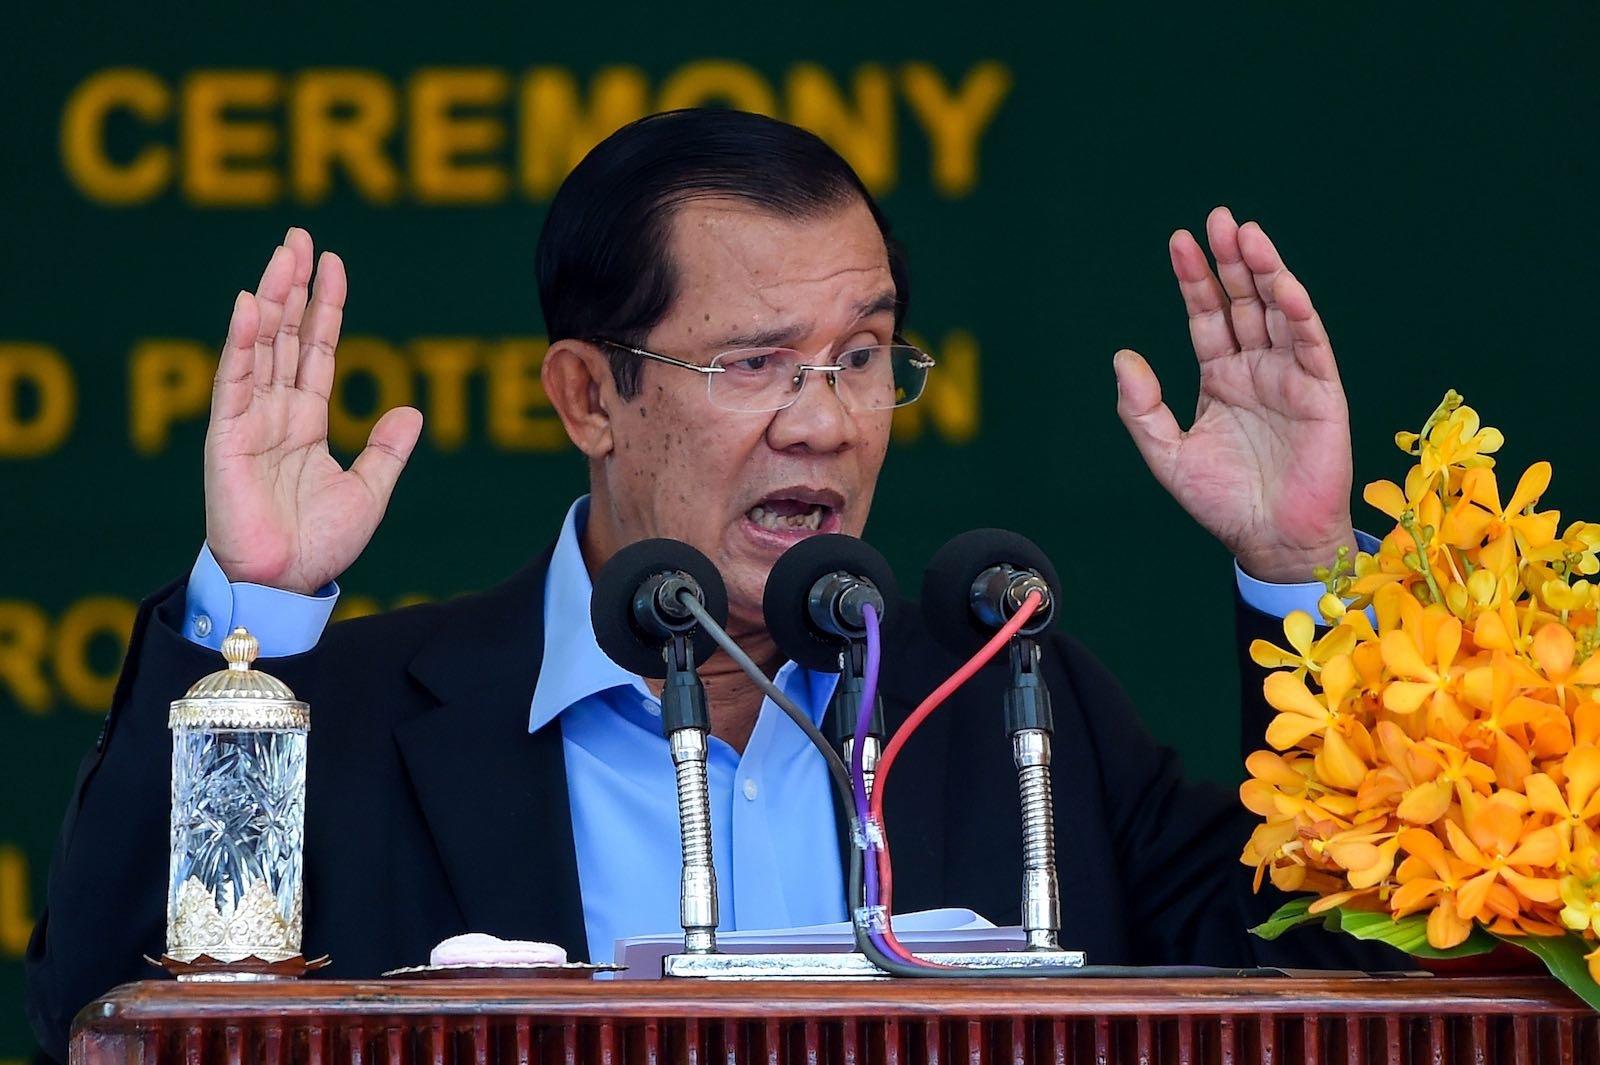 Cambodian Prime Minister Hun Sen (Photo: Tang Chhin Sothy via Getty)